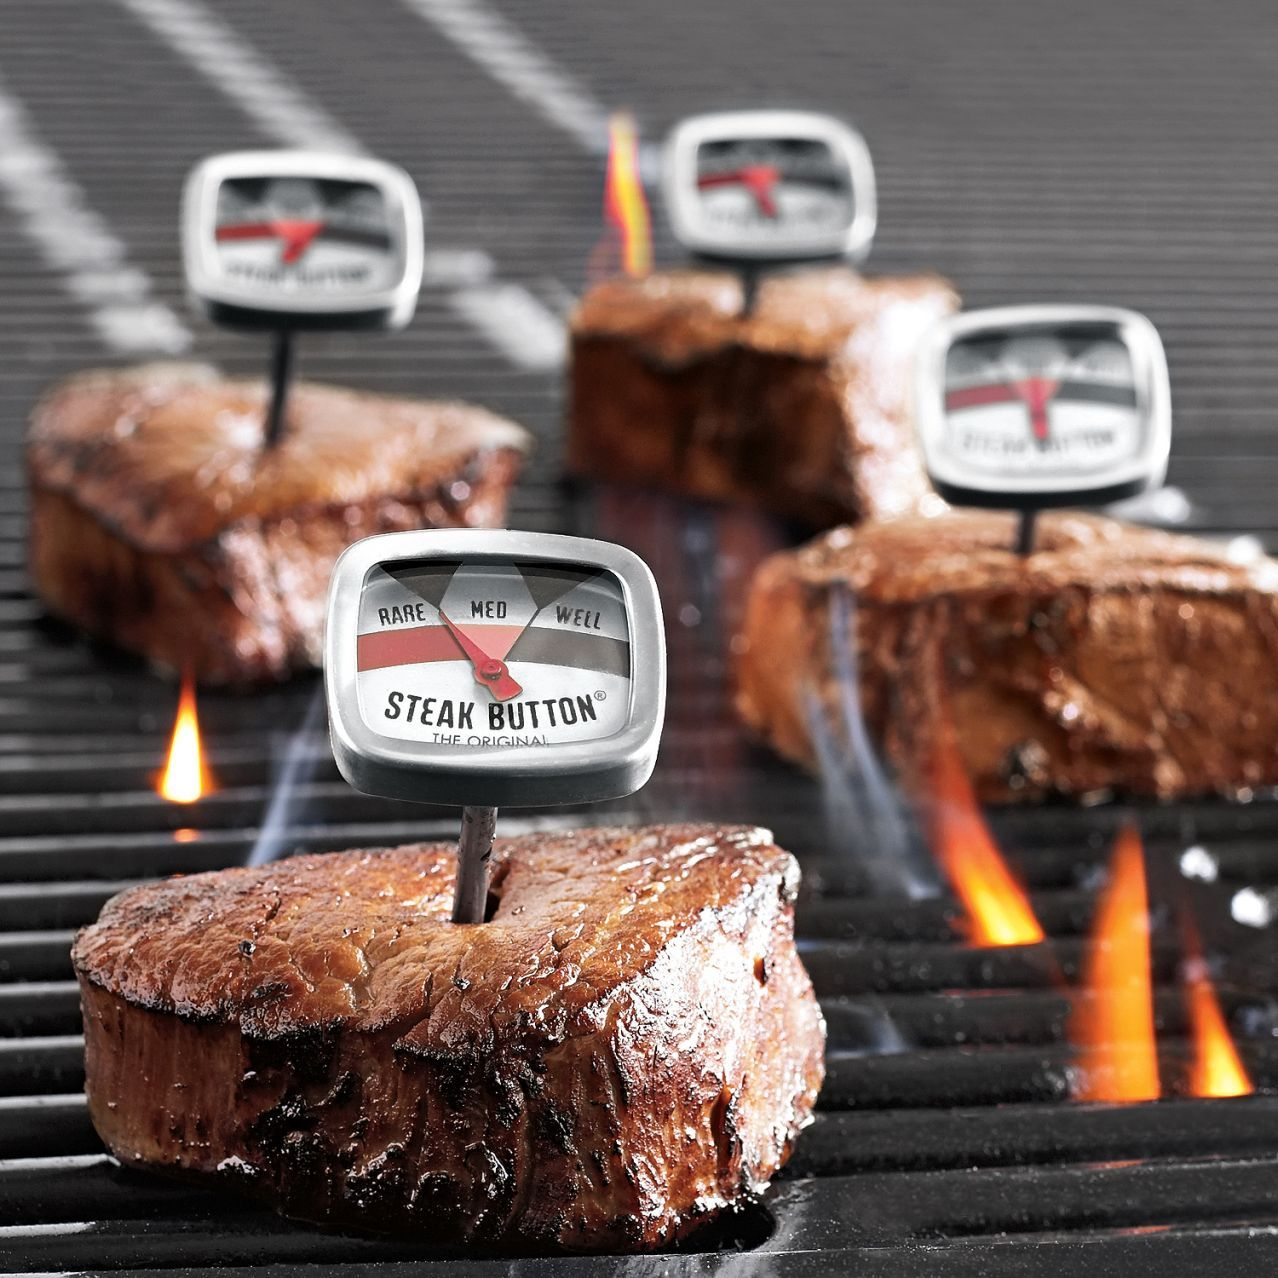 Steak Button Thermometers From Sur La Table.   Awesome Idea, No Need To  Touch